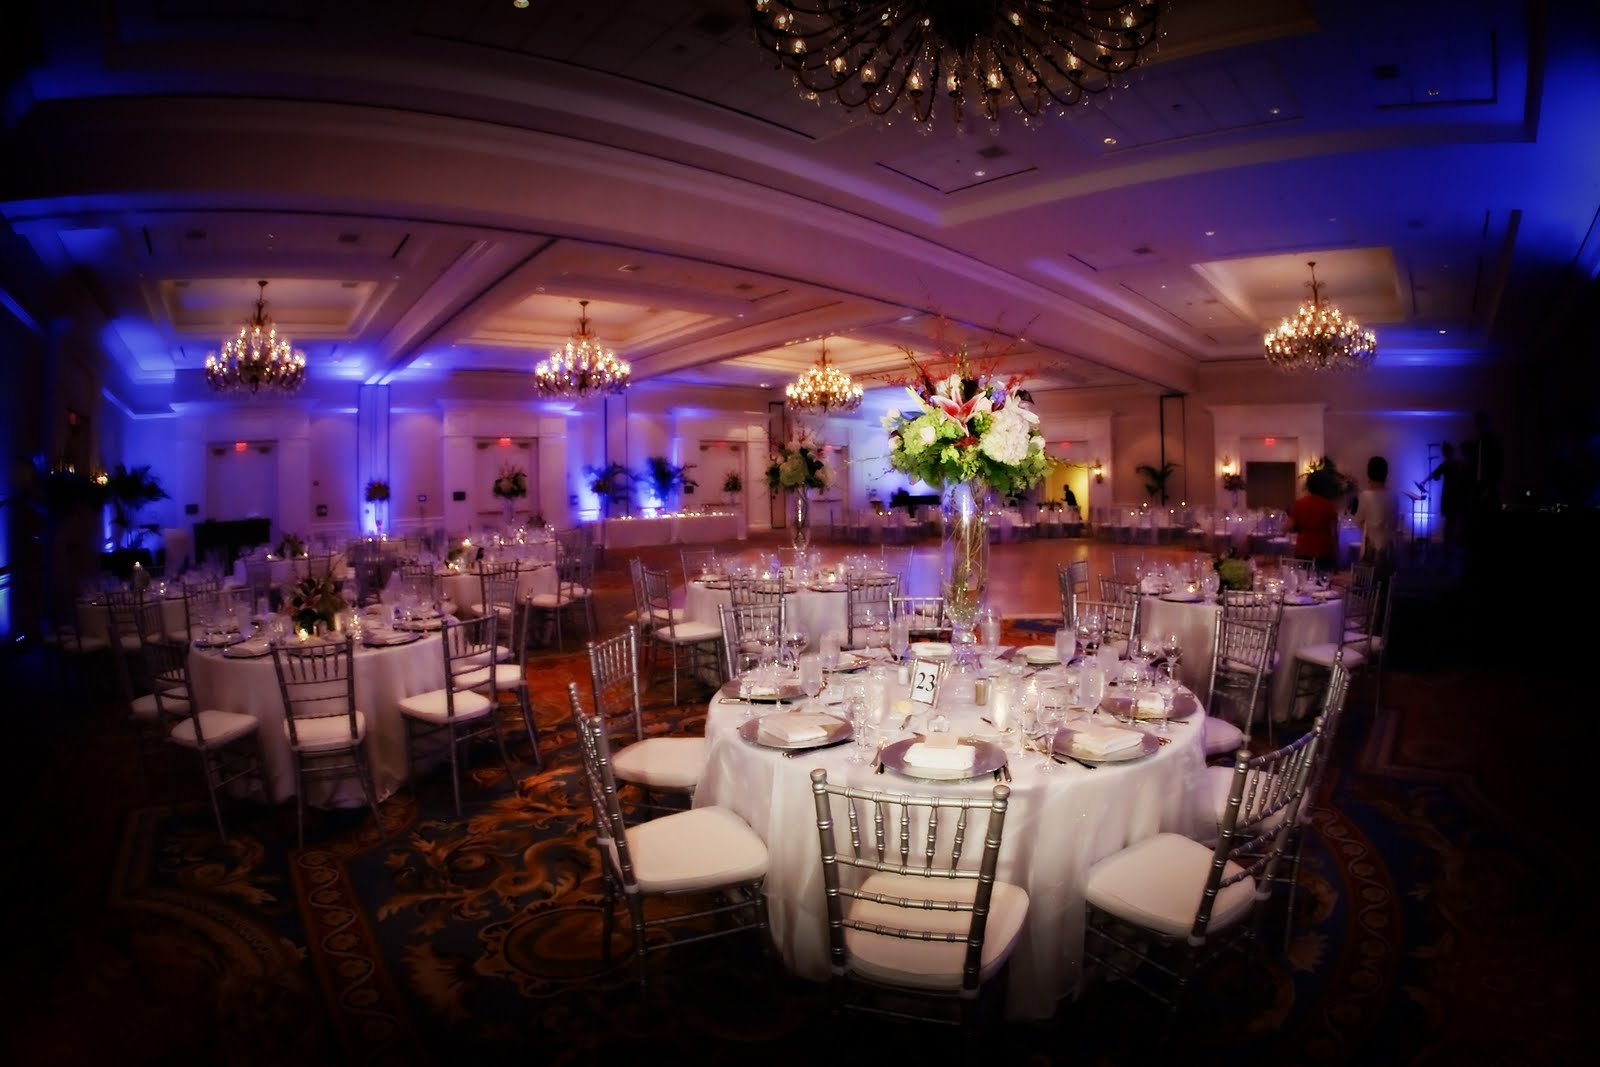 Chair Rentals Tampa Signature Event Rentals Sheer Elegance At The Tampa